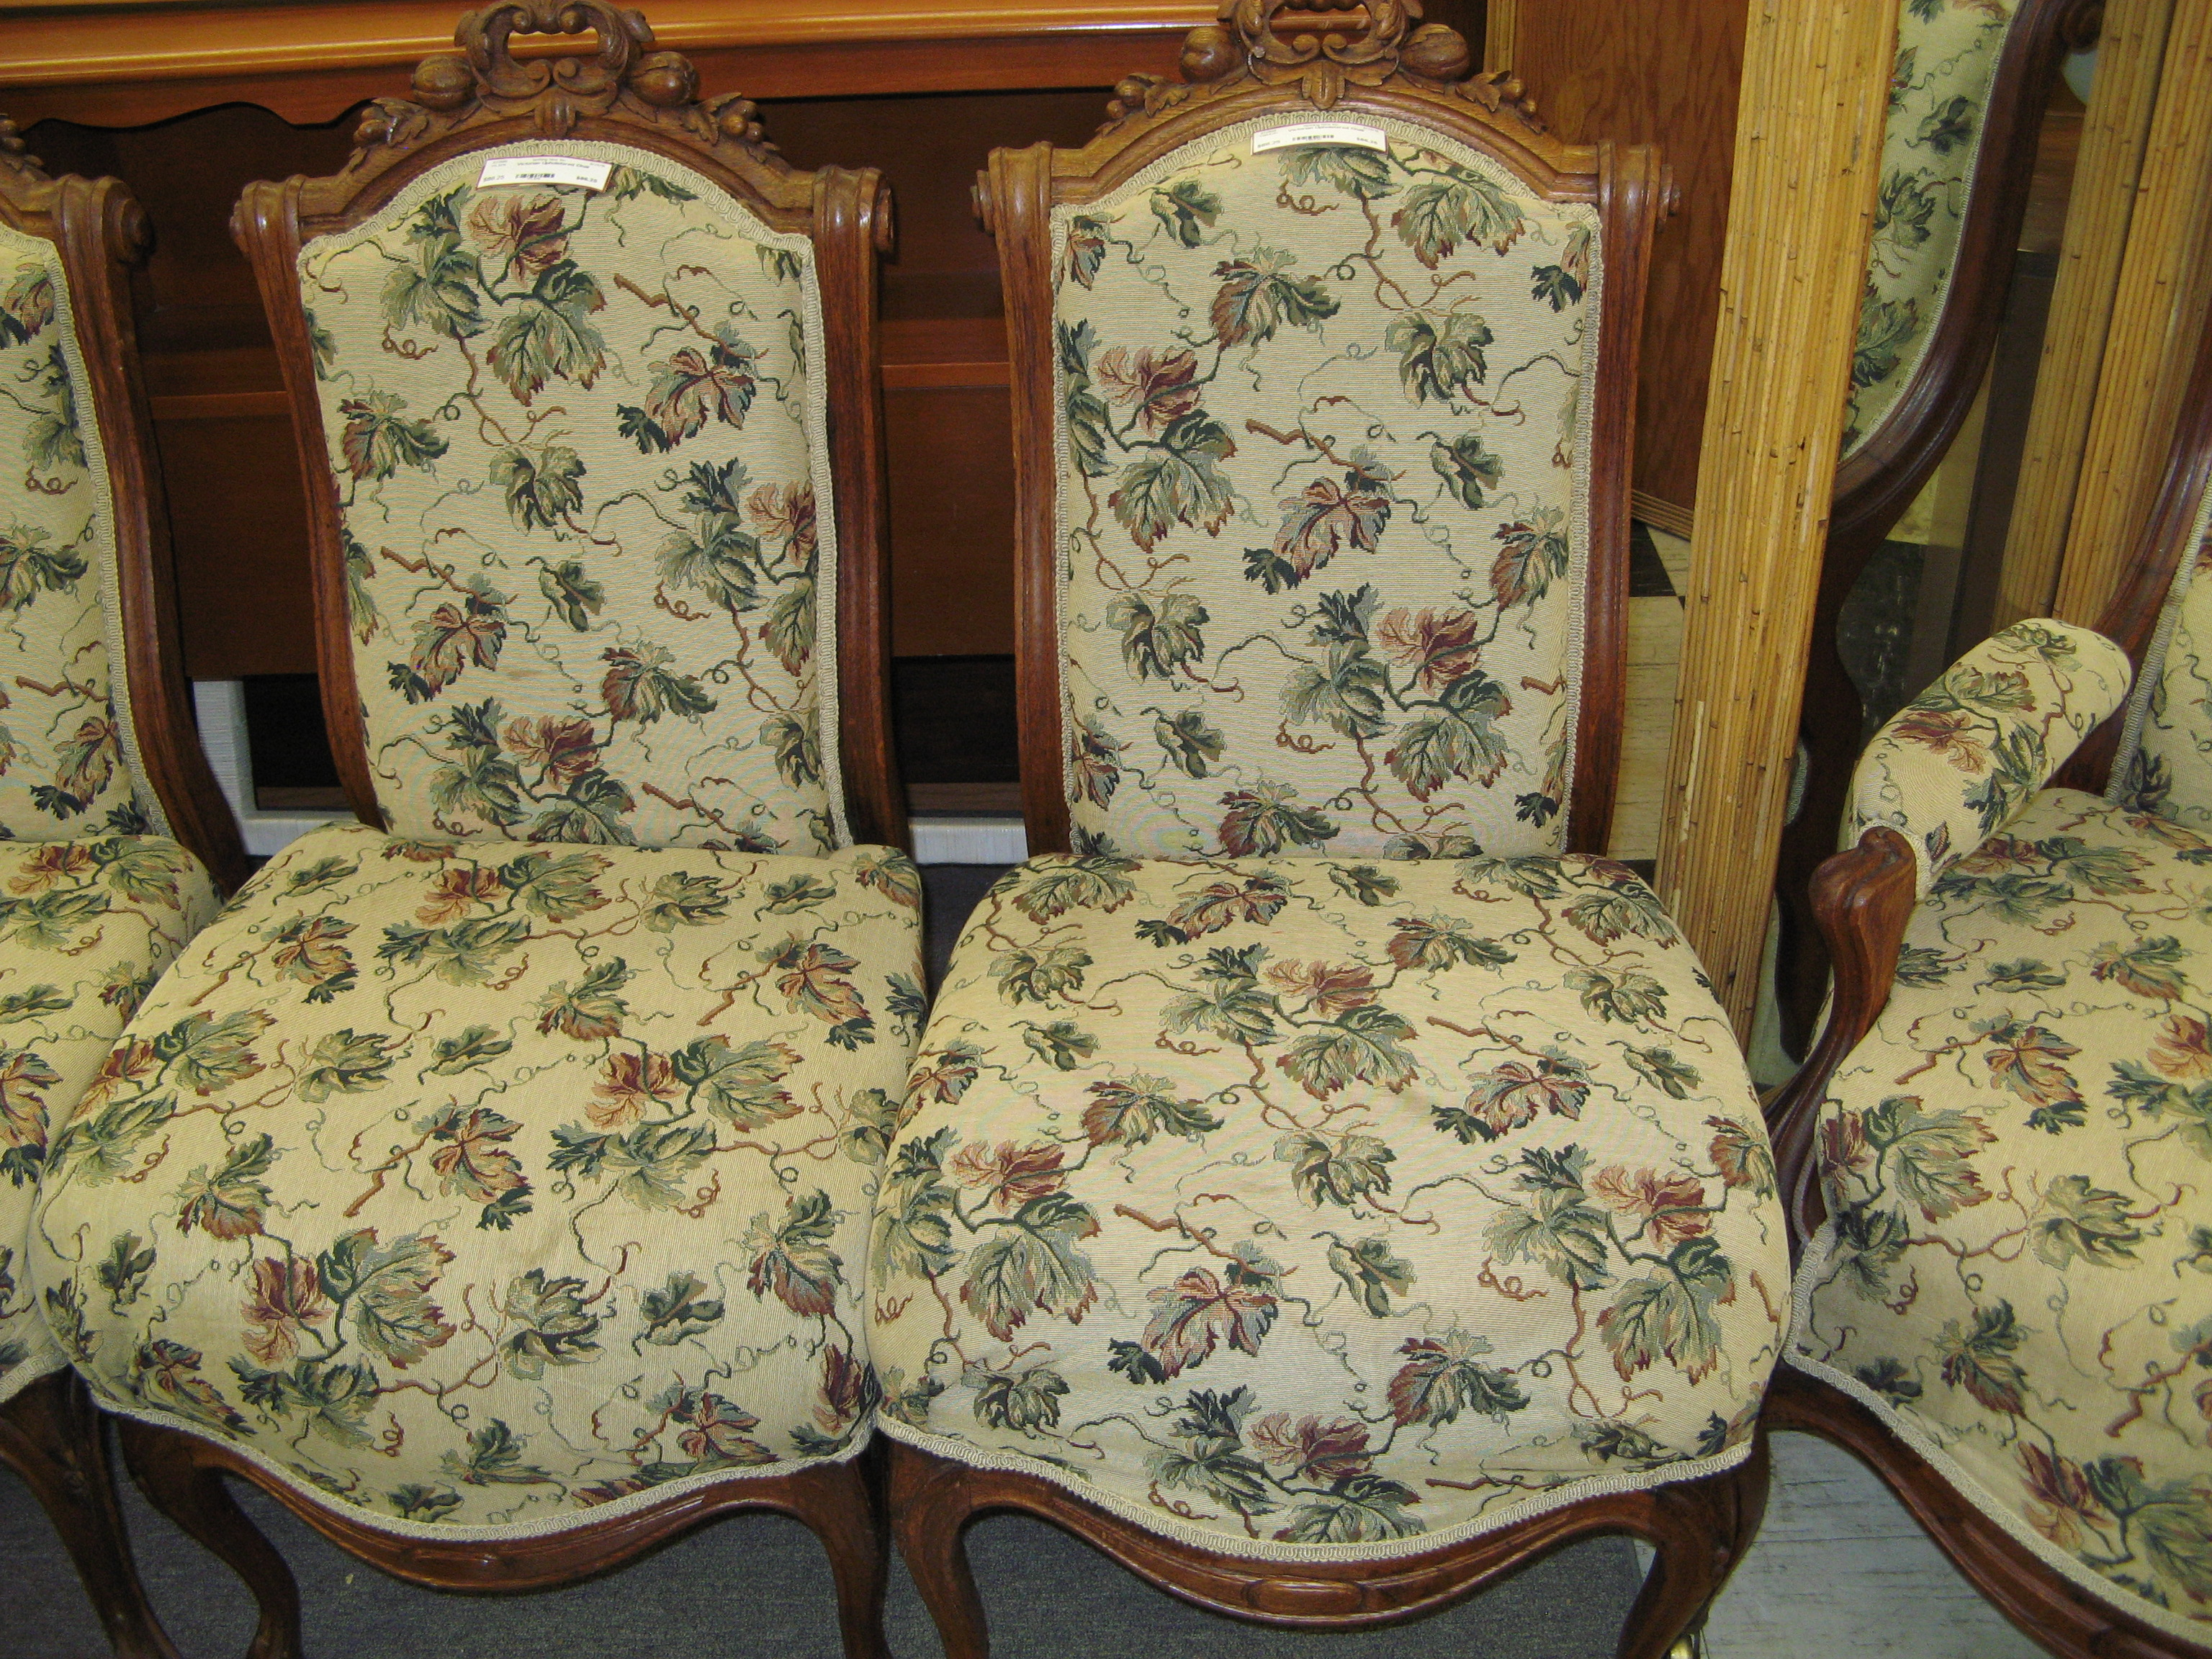 Victorian Upholstered Chair w/ Green & Brown Leaf Pattern